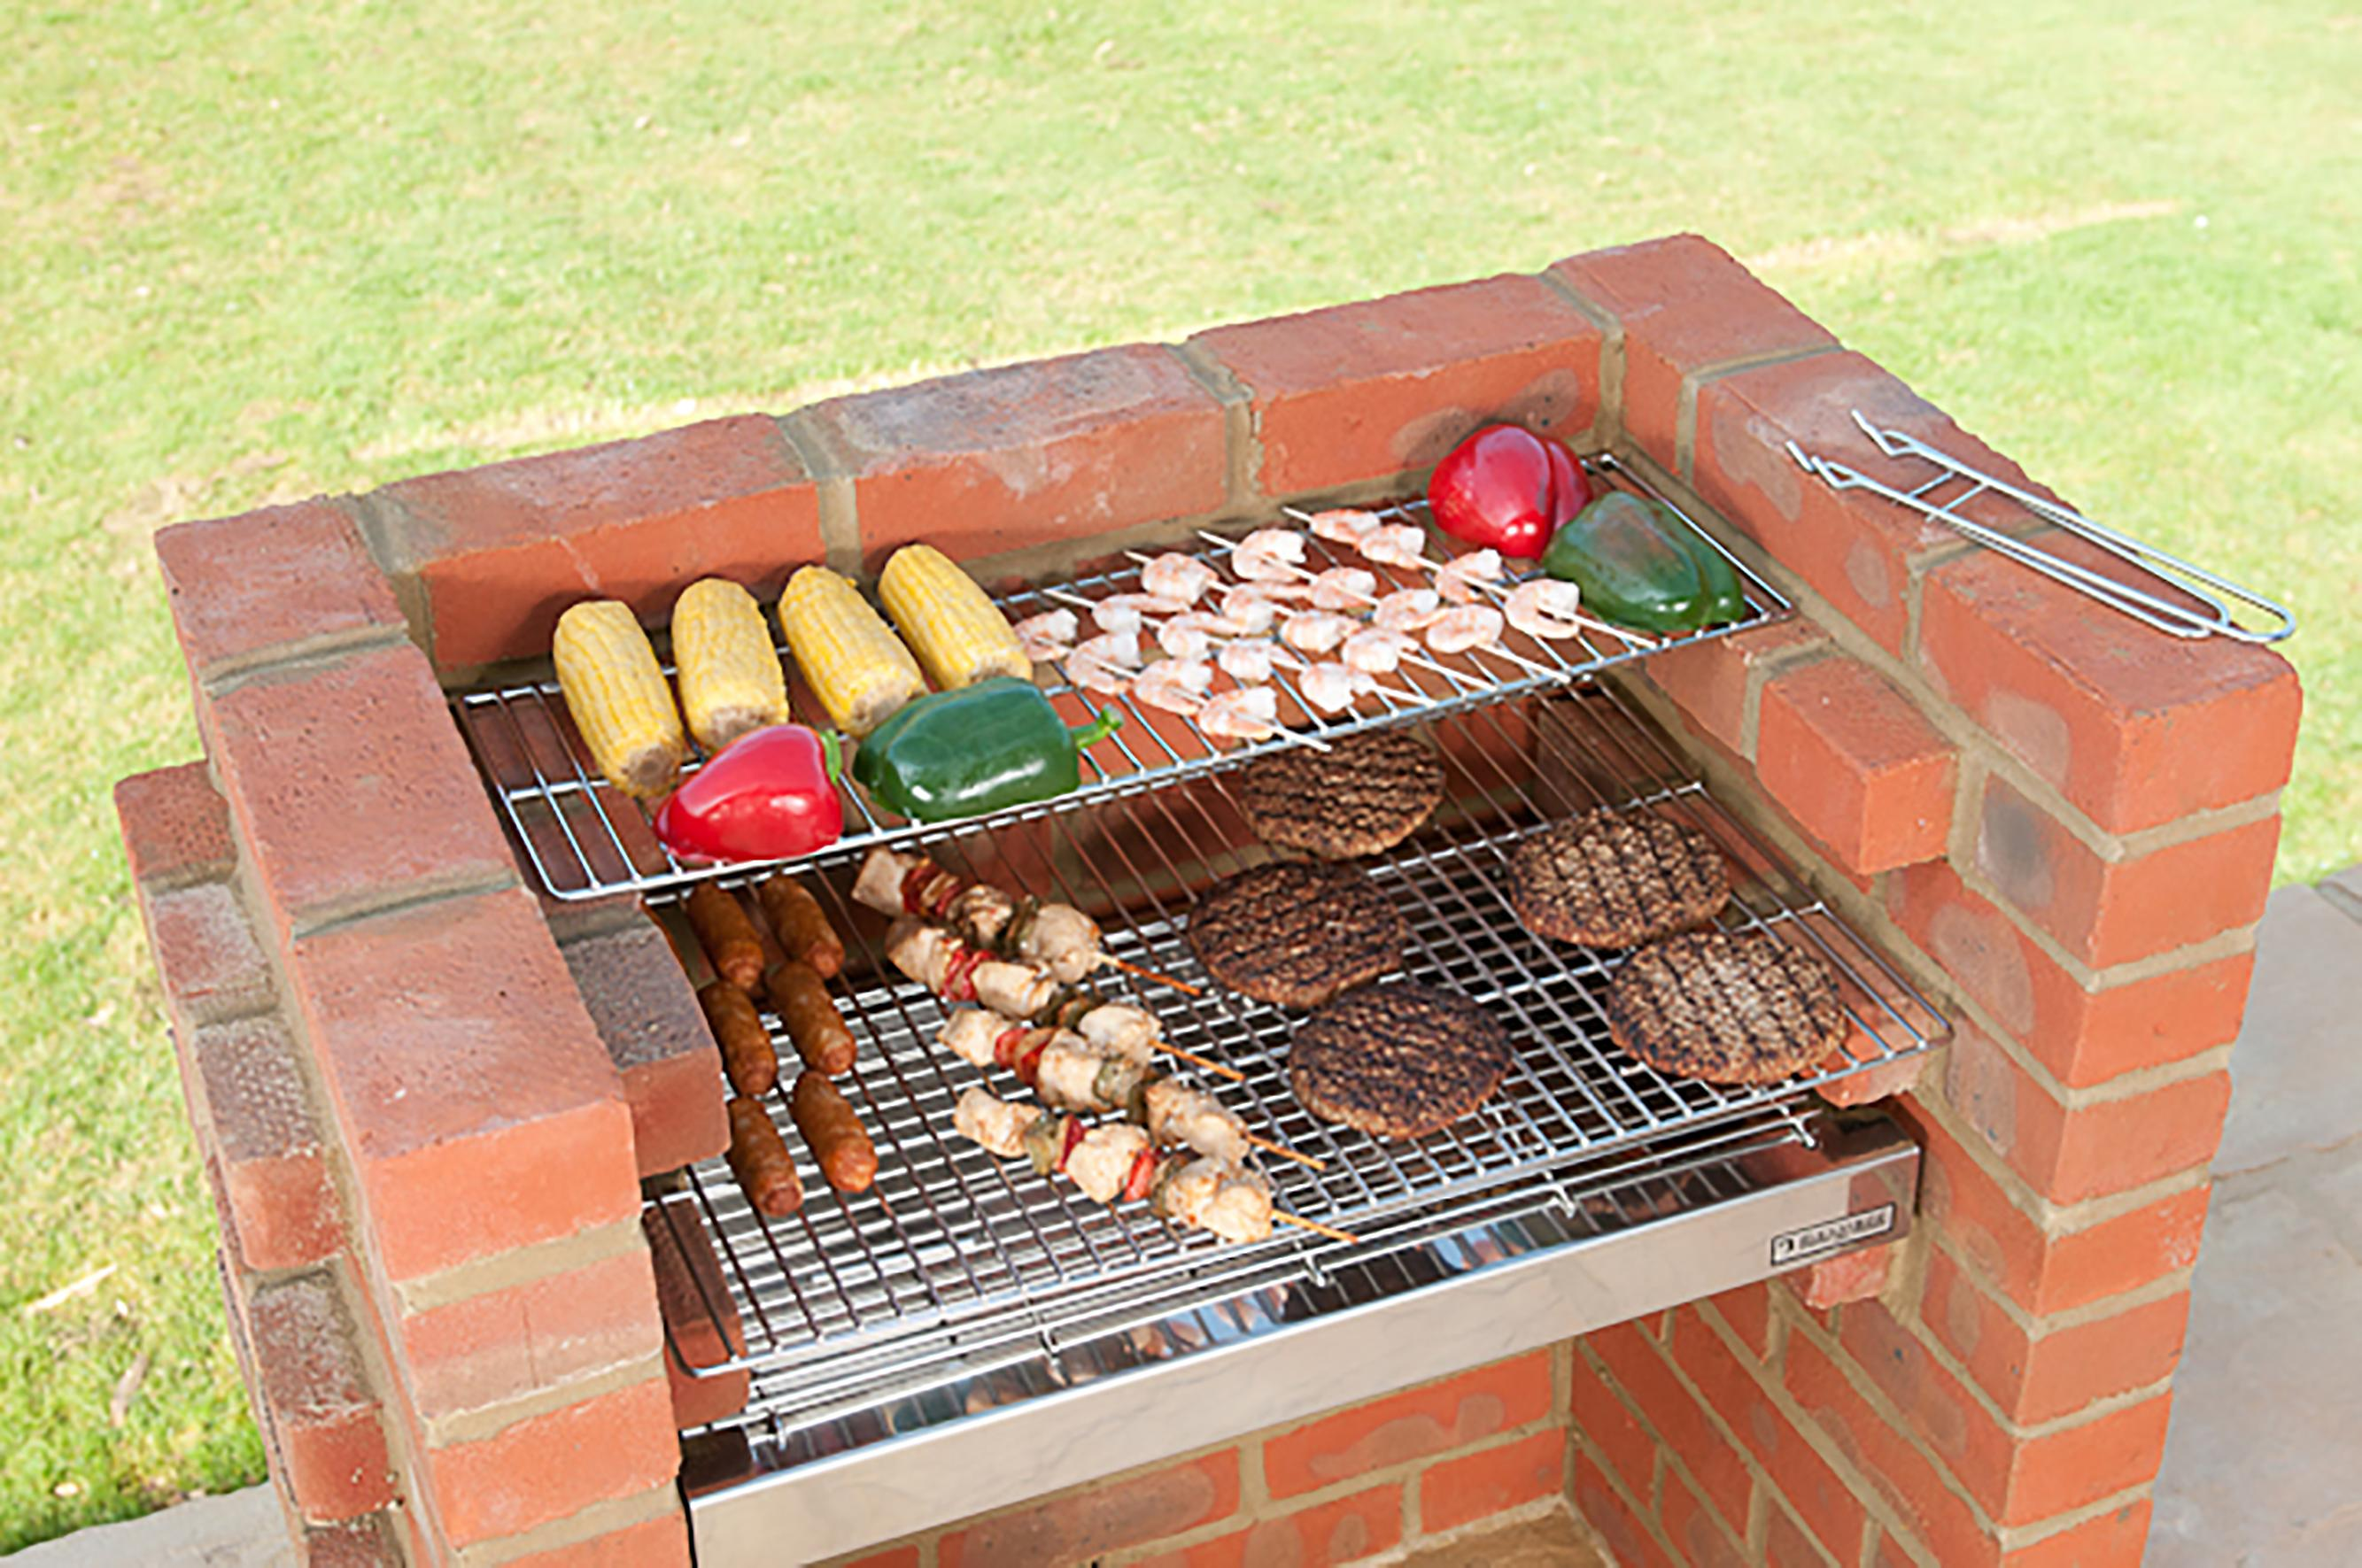 Black Knight Stainless Steel Brick Barbecue Kit - Excalibur